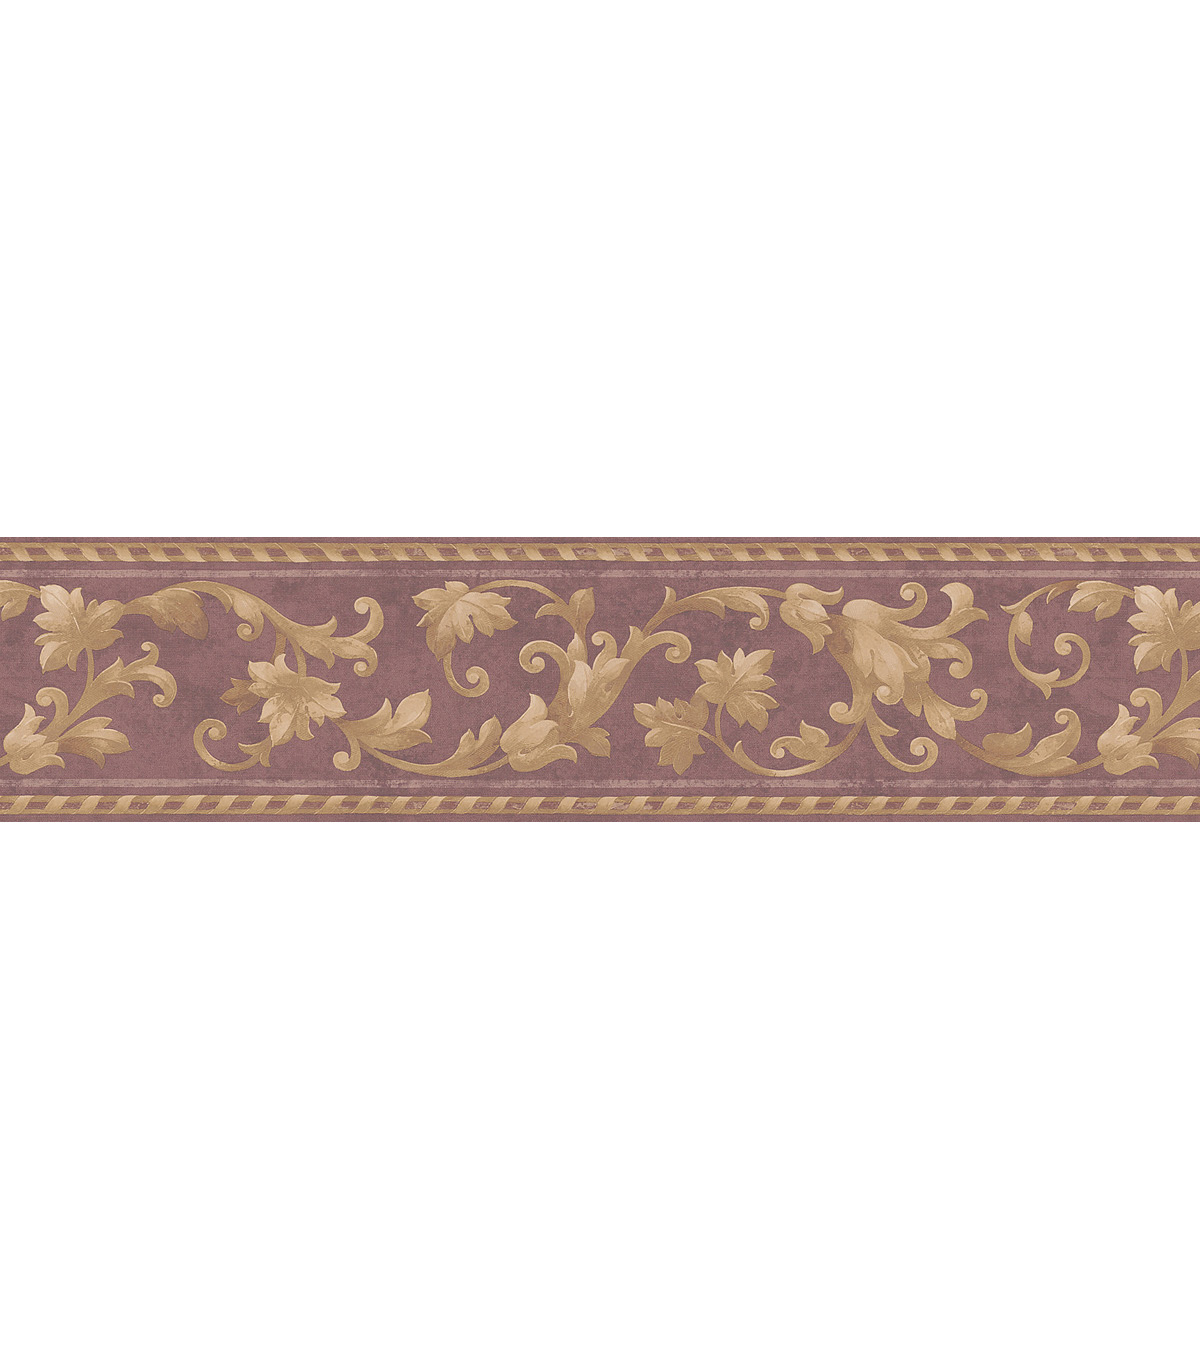 Scroll Wallpaper Border Burgundy SampleRoyal Scroll Wallpaper Border 1200x1360